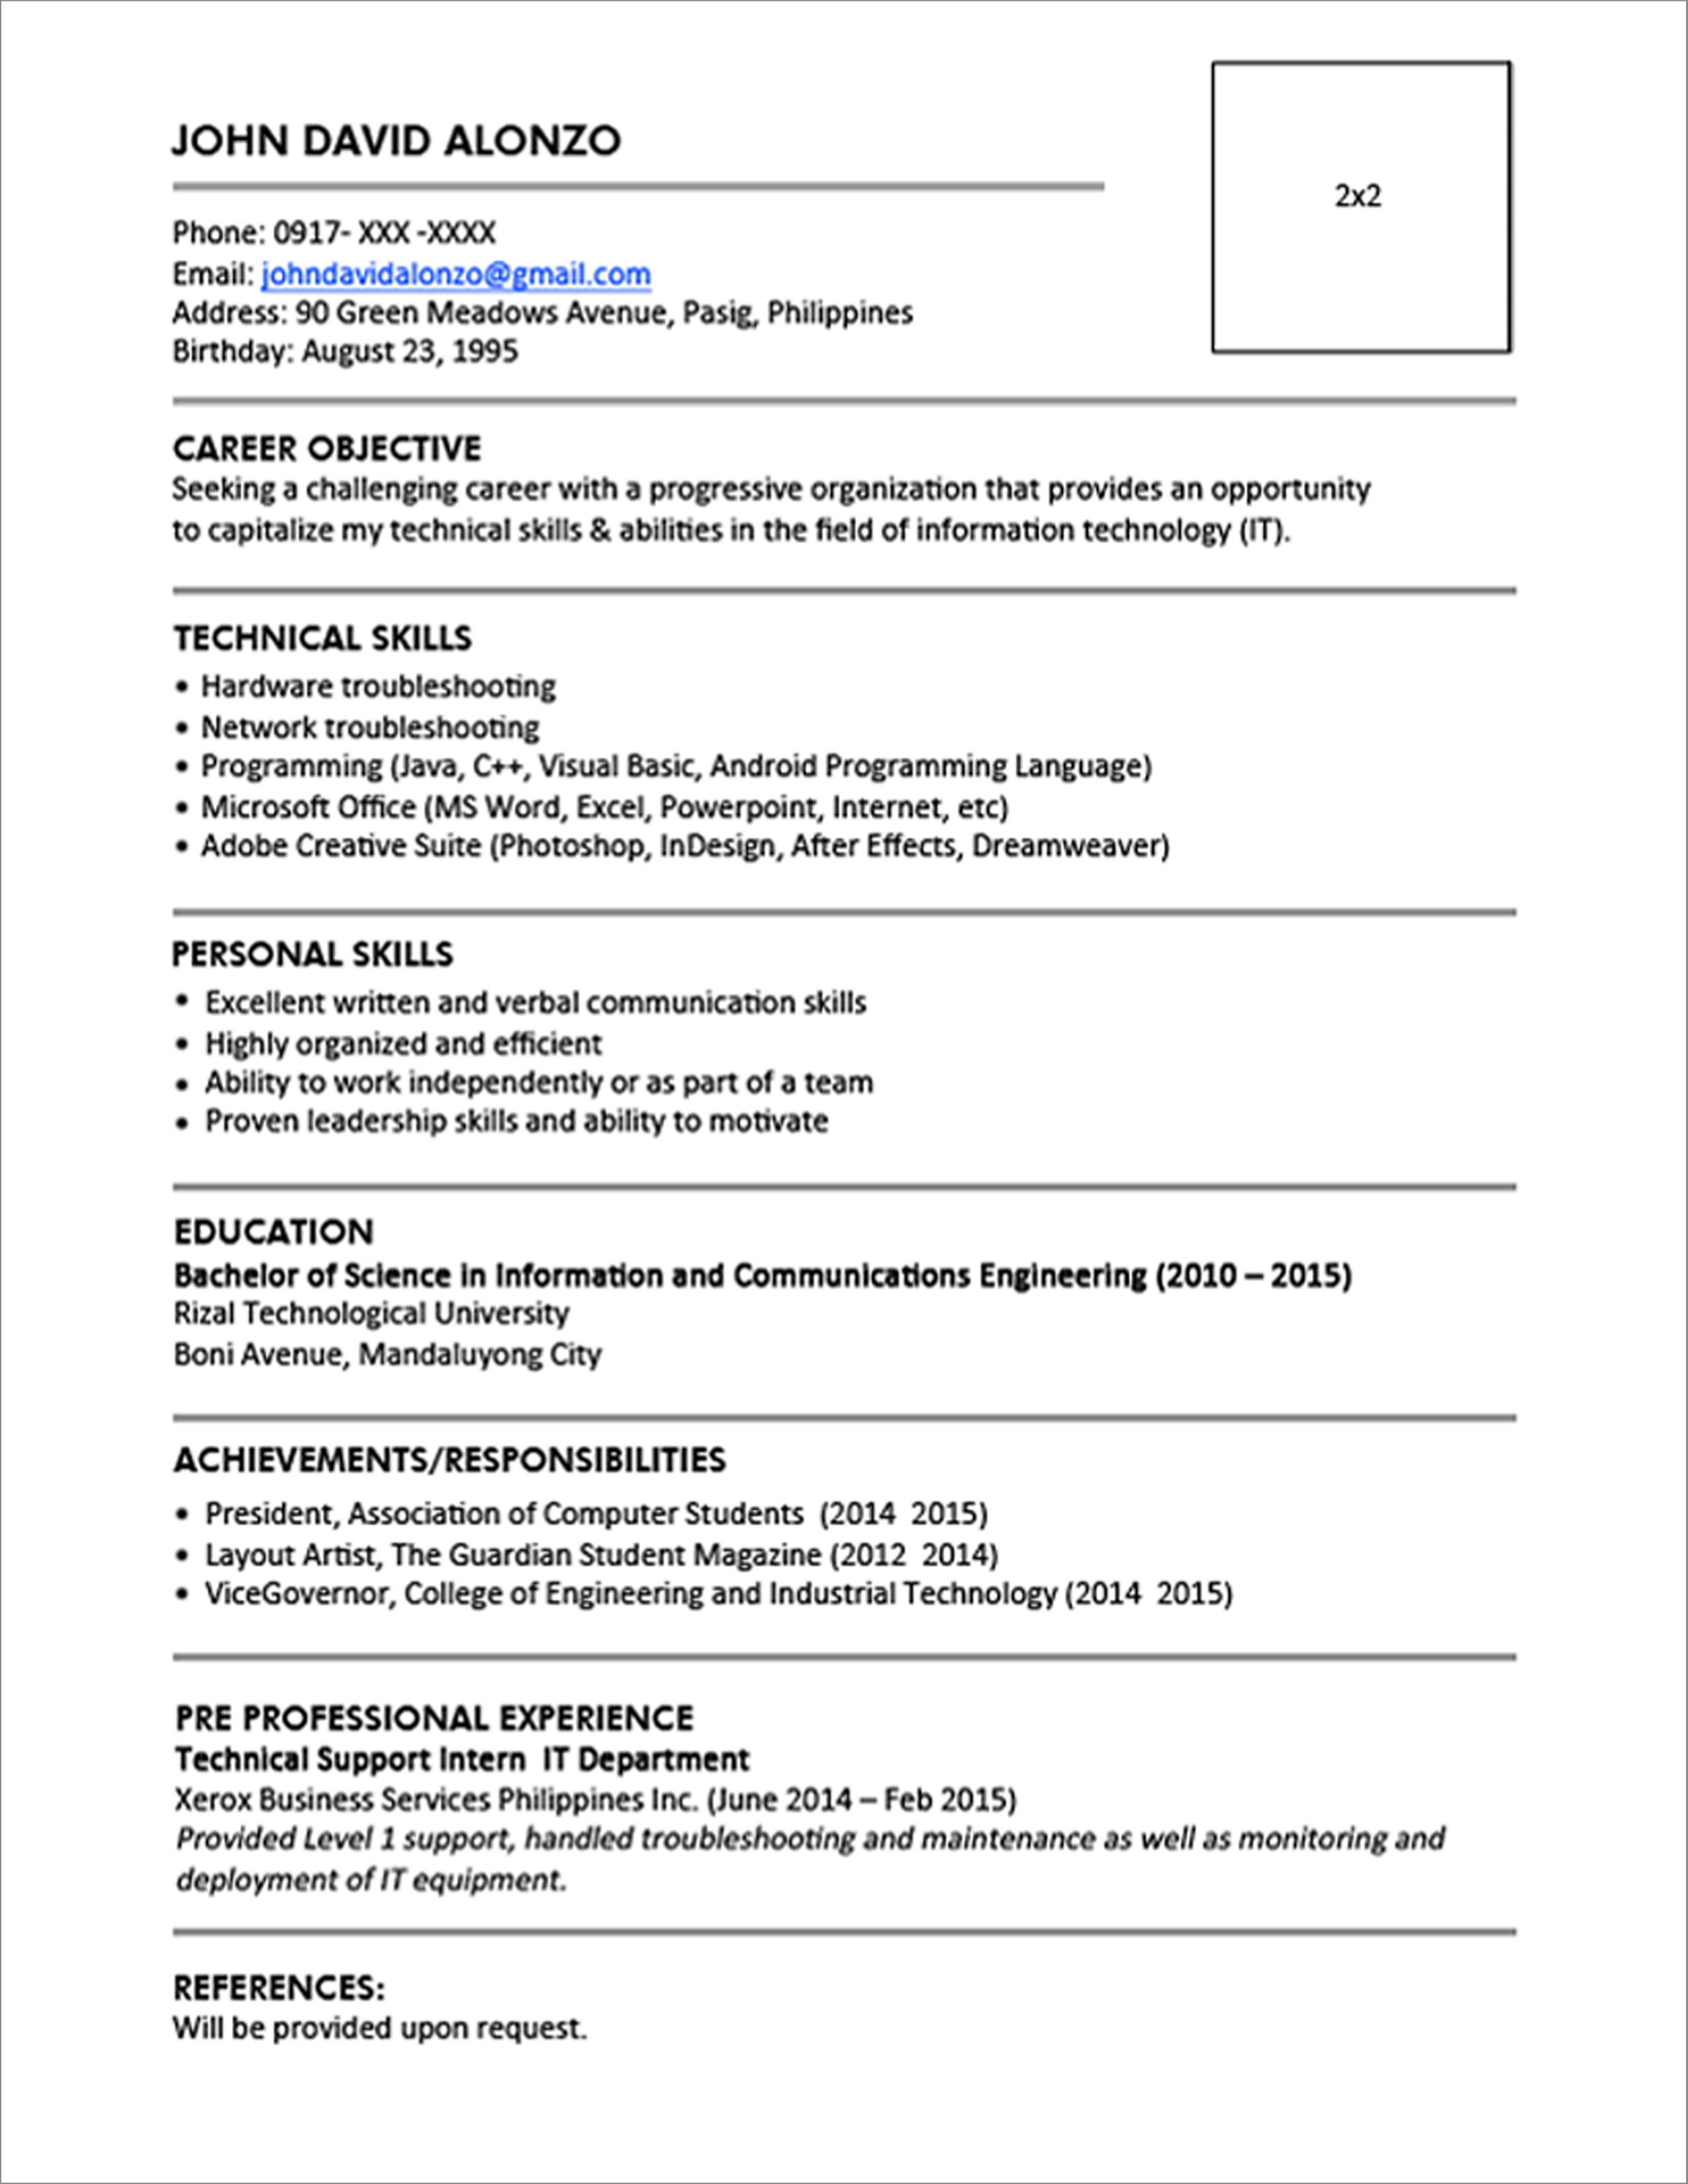 How To Word Your Skills On A Resume New Graduates 3 Resume Templates Sample Resume Resume